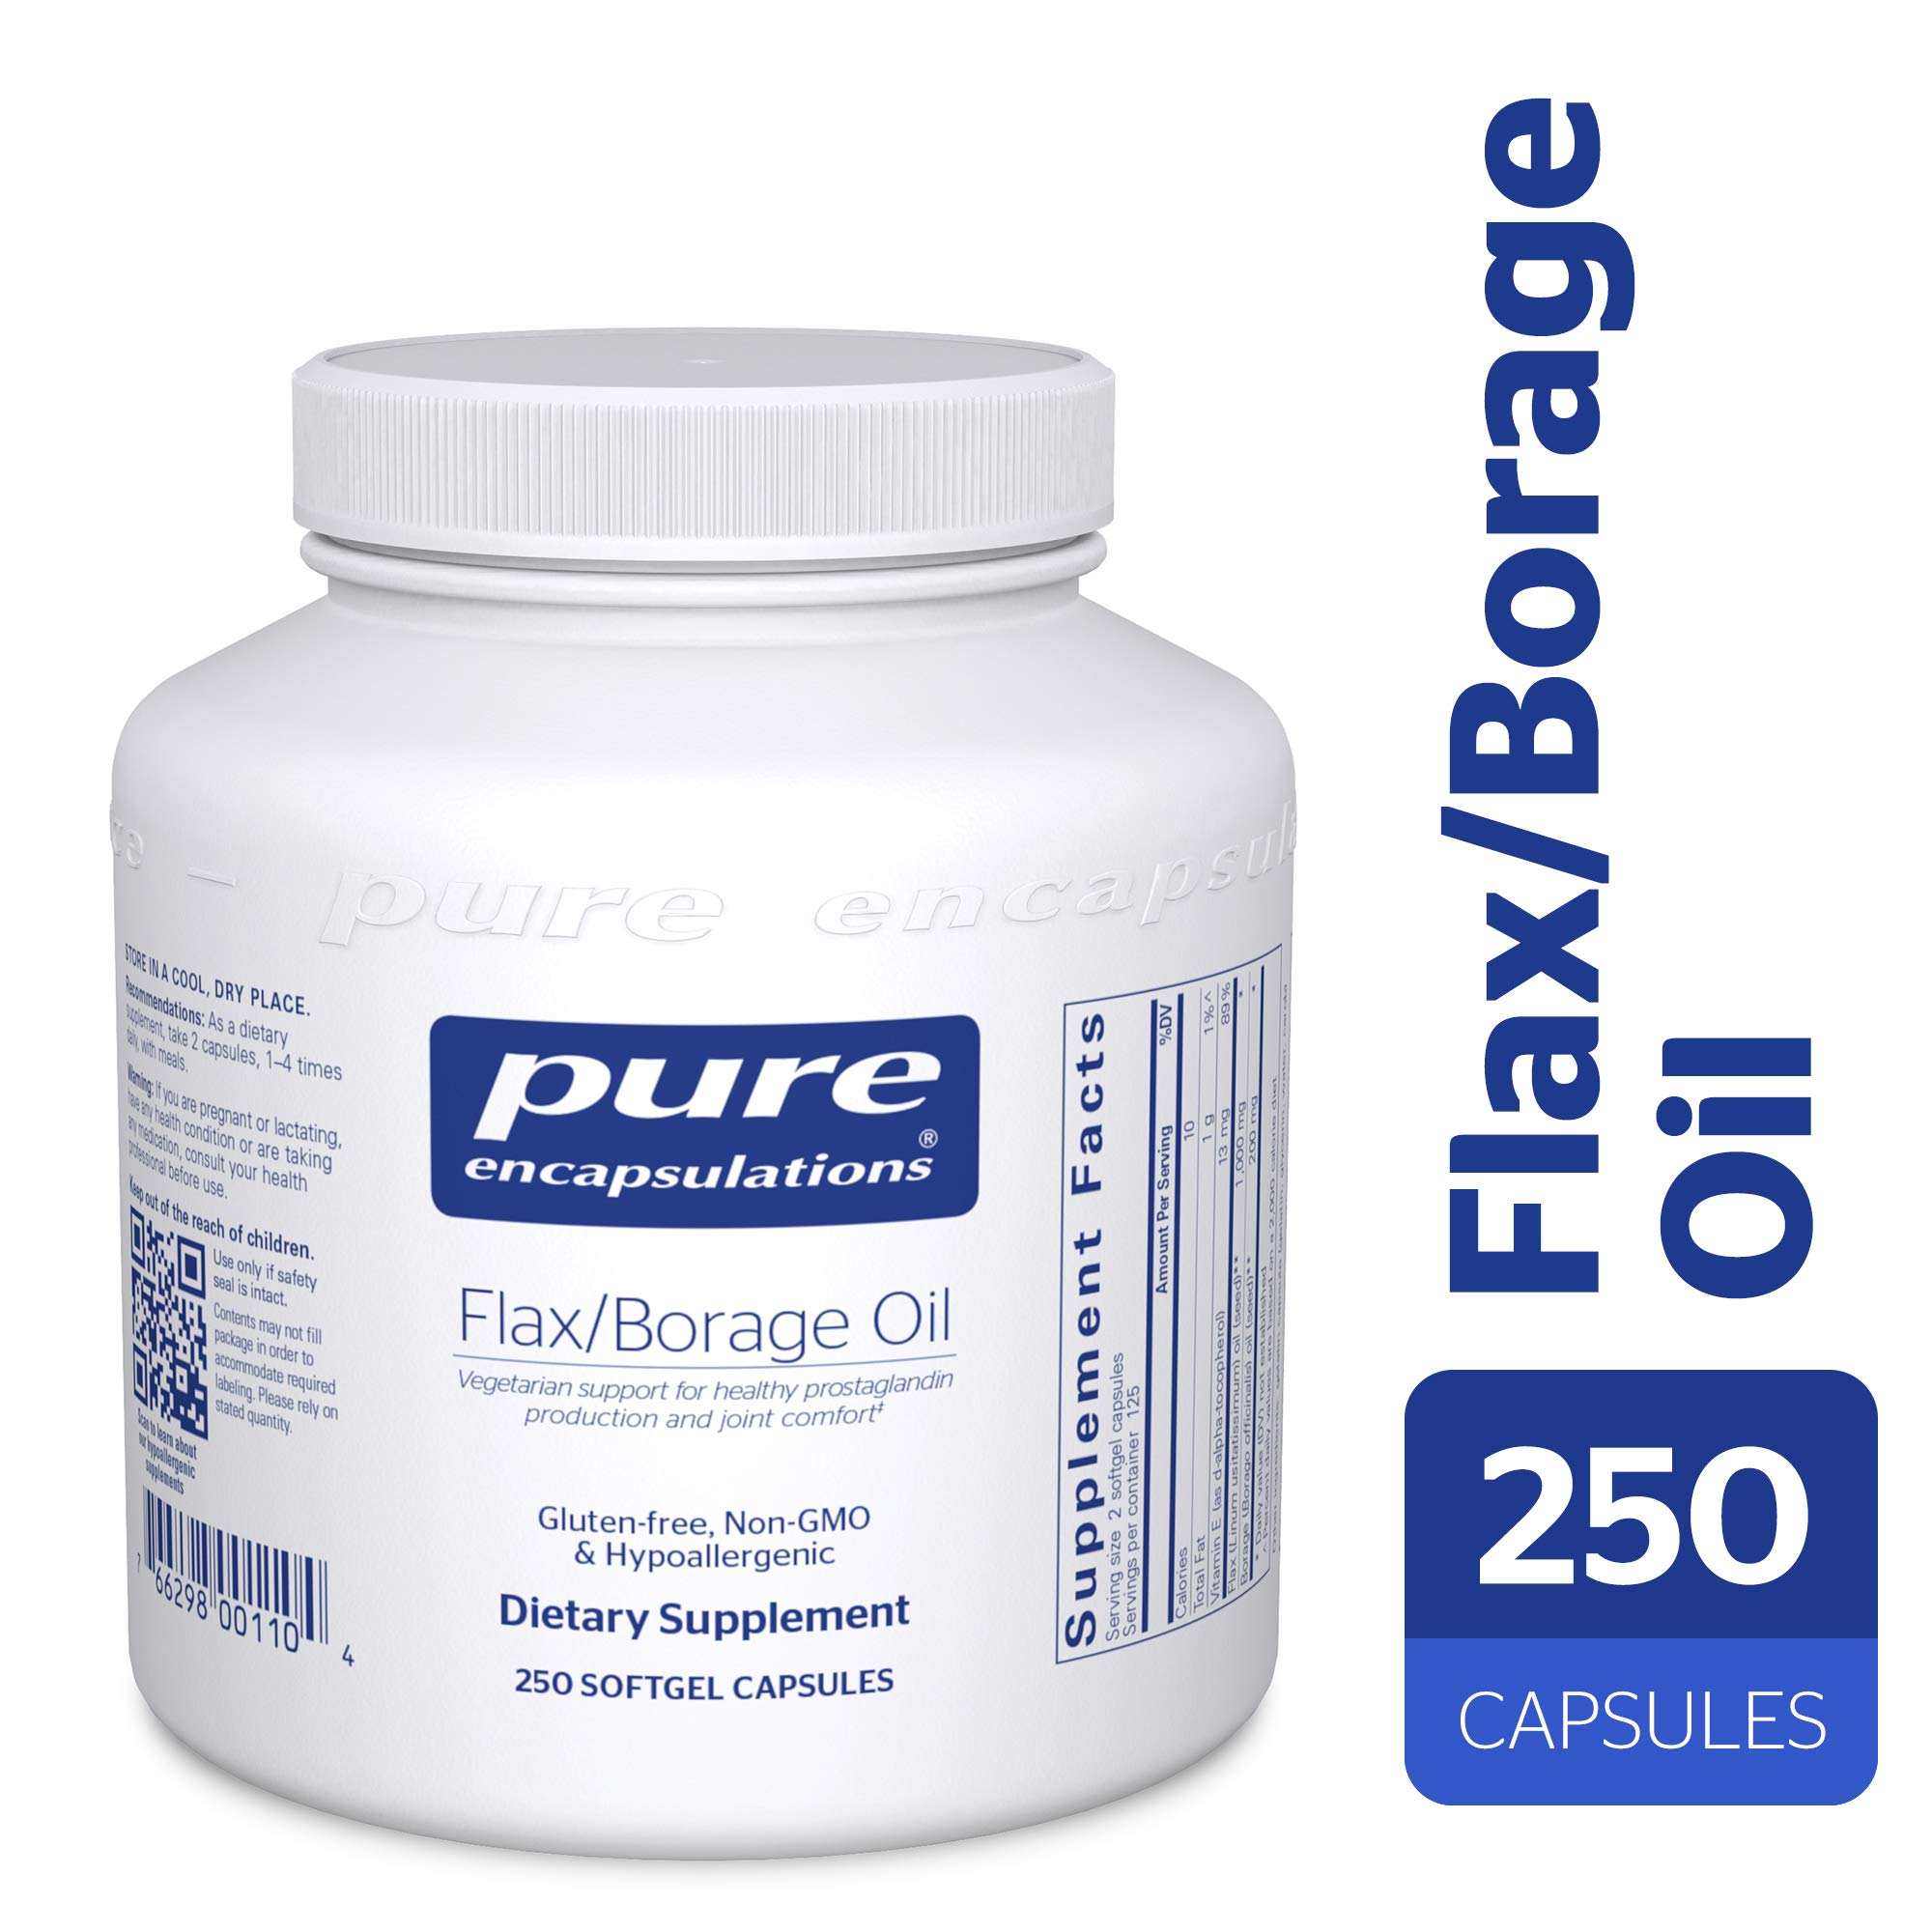 Pure Encapsulations - Flax/Borage Oil - Hypoallergenic Supplement Containing 50% Omega-3 and 22% GLA - 250 Softgel Capsules